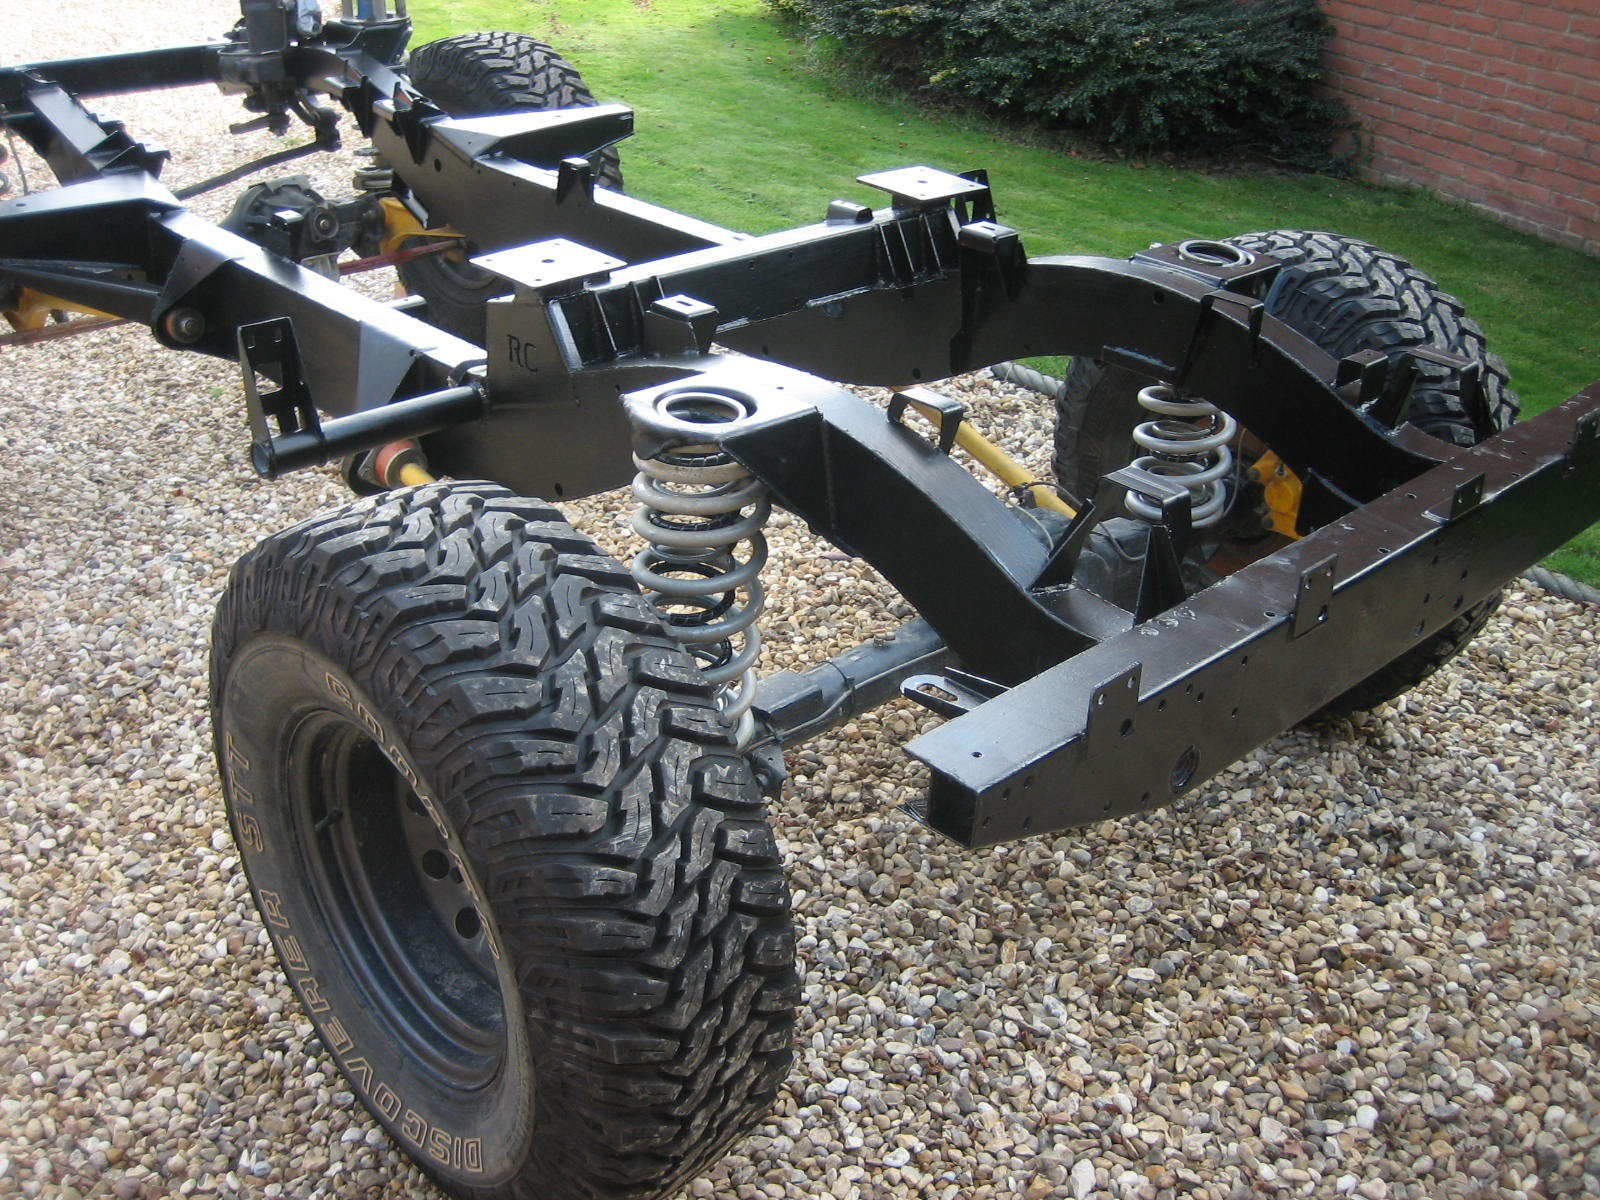 New galvanised chassis what to do